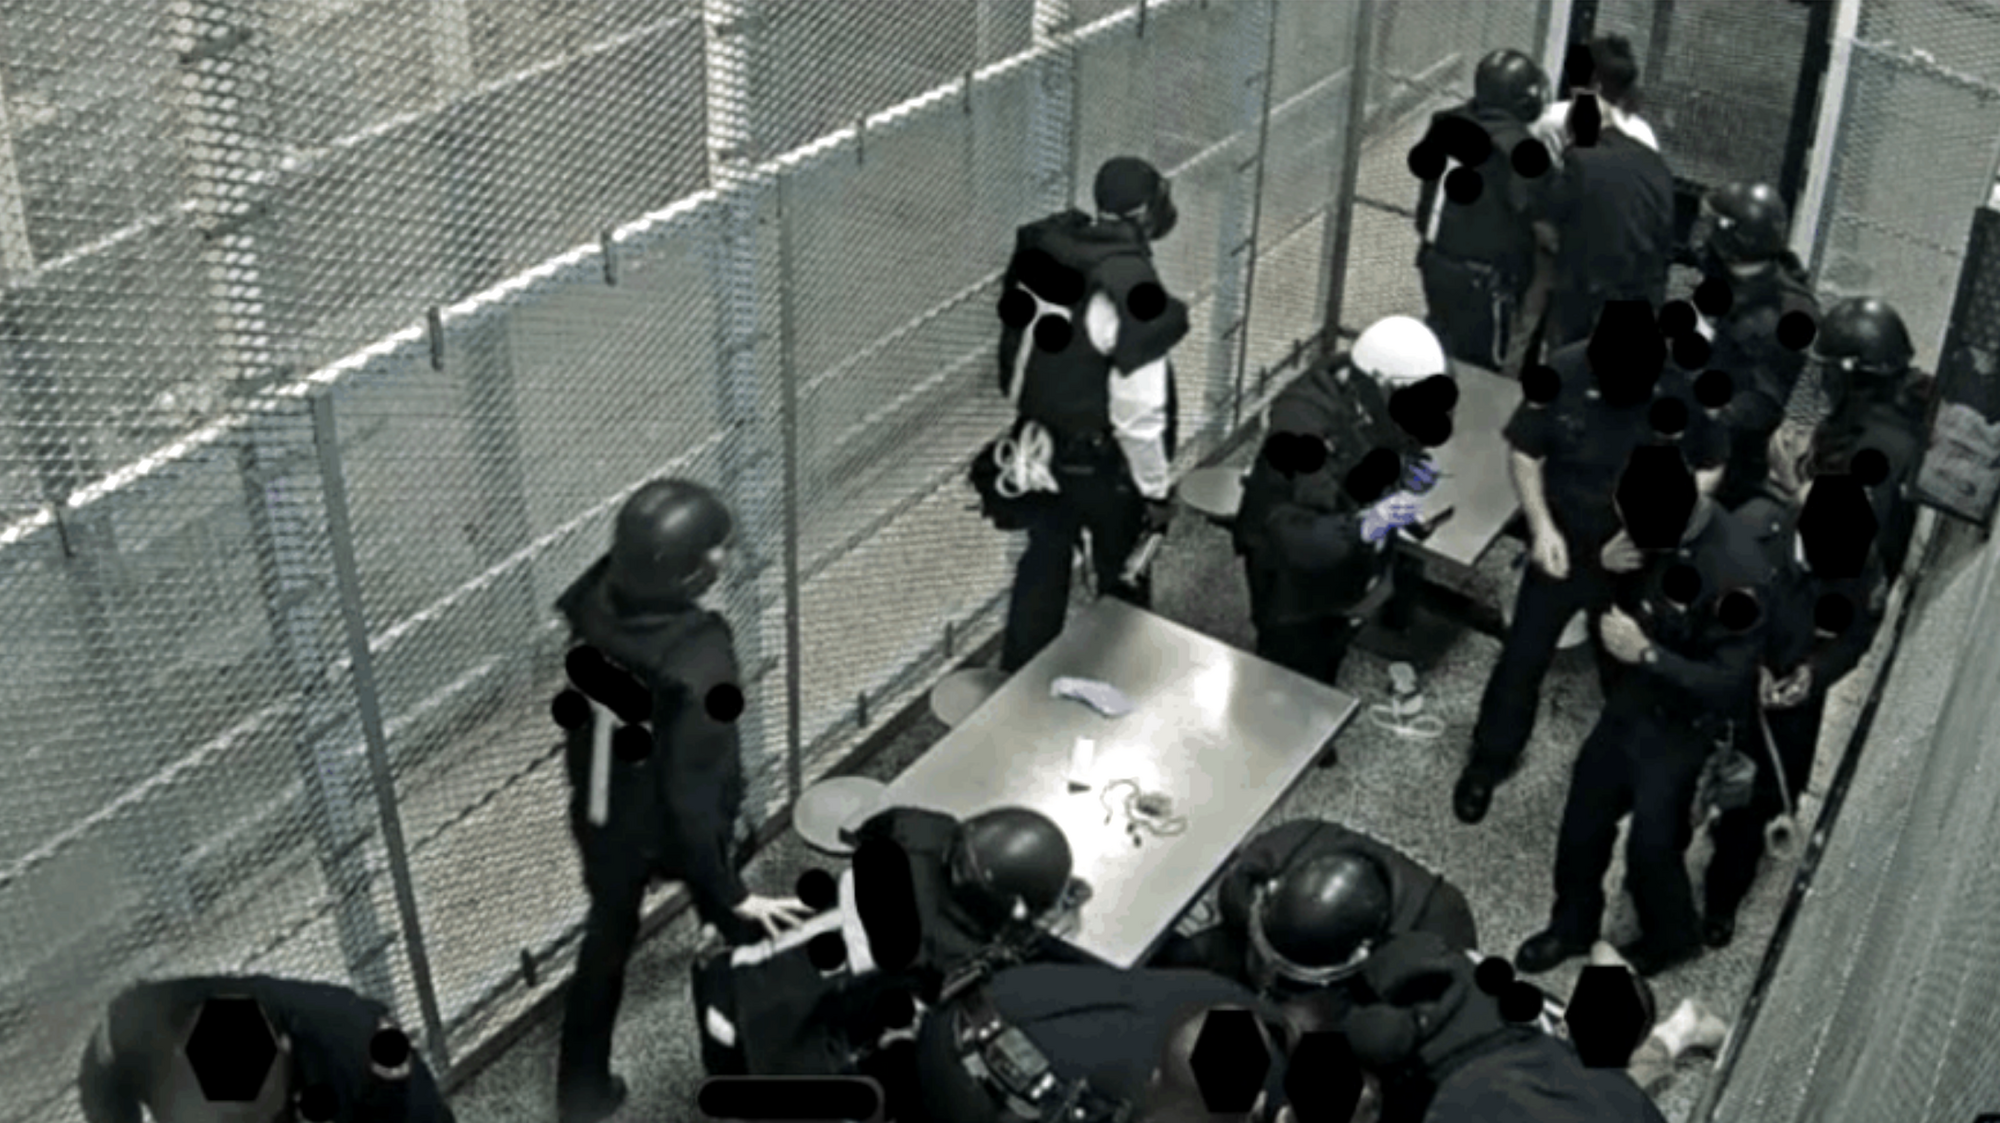 As part of the settlement of Nuñez v. City of New York, a 2011 class-action lawsuit filed by Rikers Island detainees, federal monitors periodically report on use of force across the jail complex. This image from the Eleventh Report shows at least 12 officers in a recreational area responding to two detainees who refused to be handcuffed.